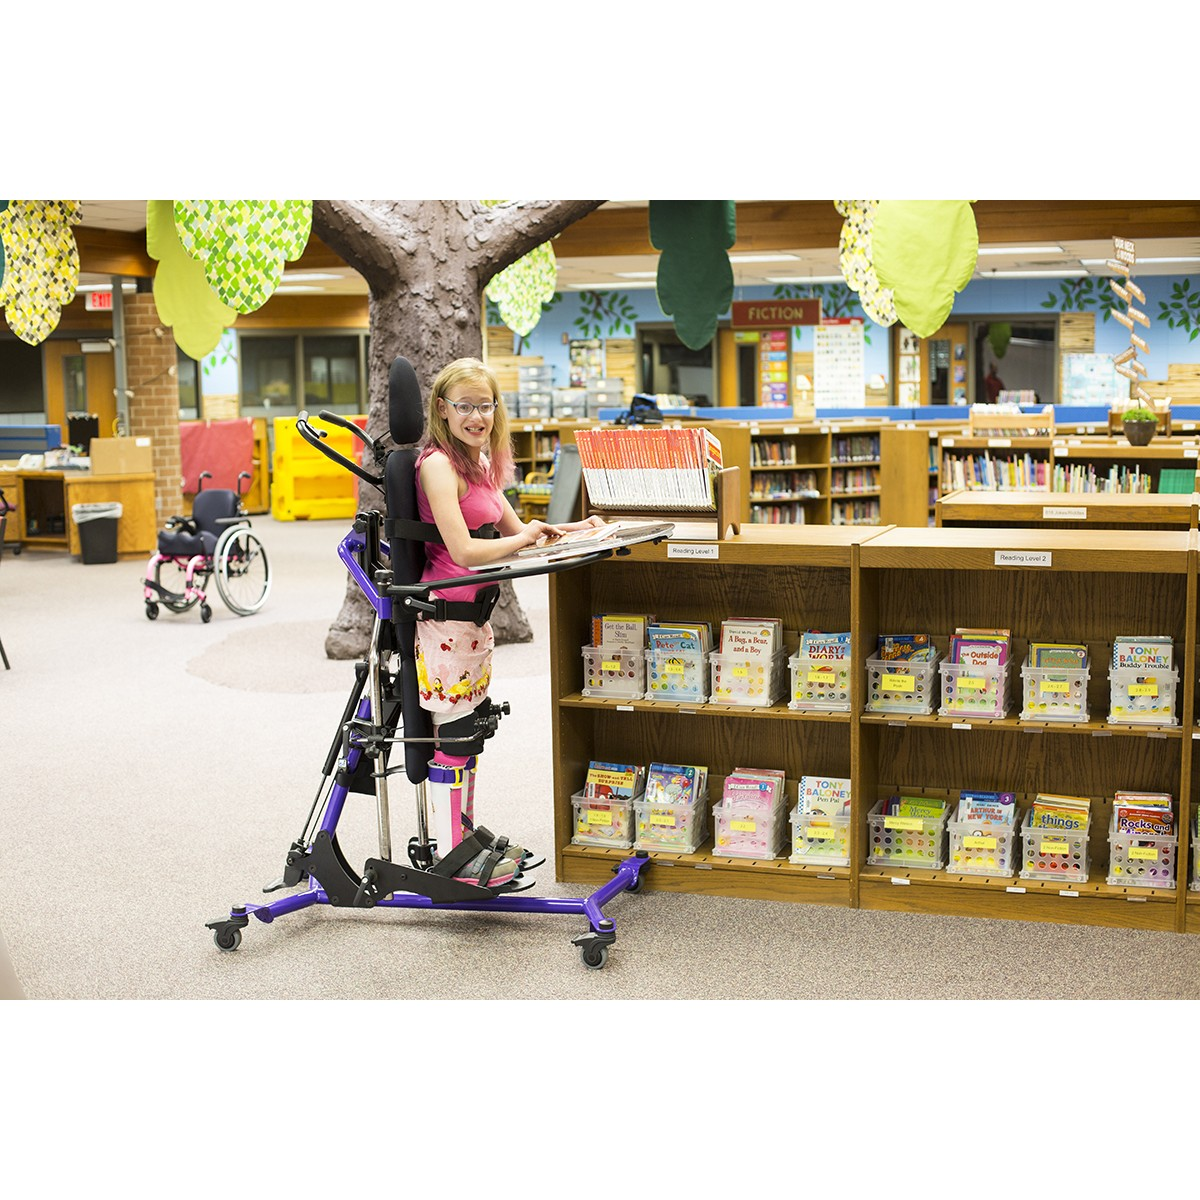 Girl standing in a Purple EasyStand Zing Supine TT Size 2 Gas Spring Lift in a Library